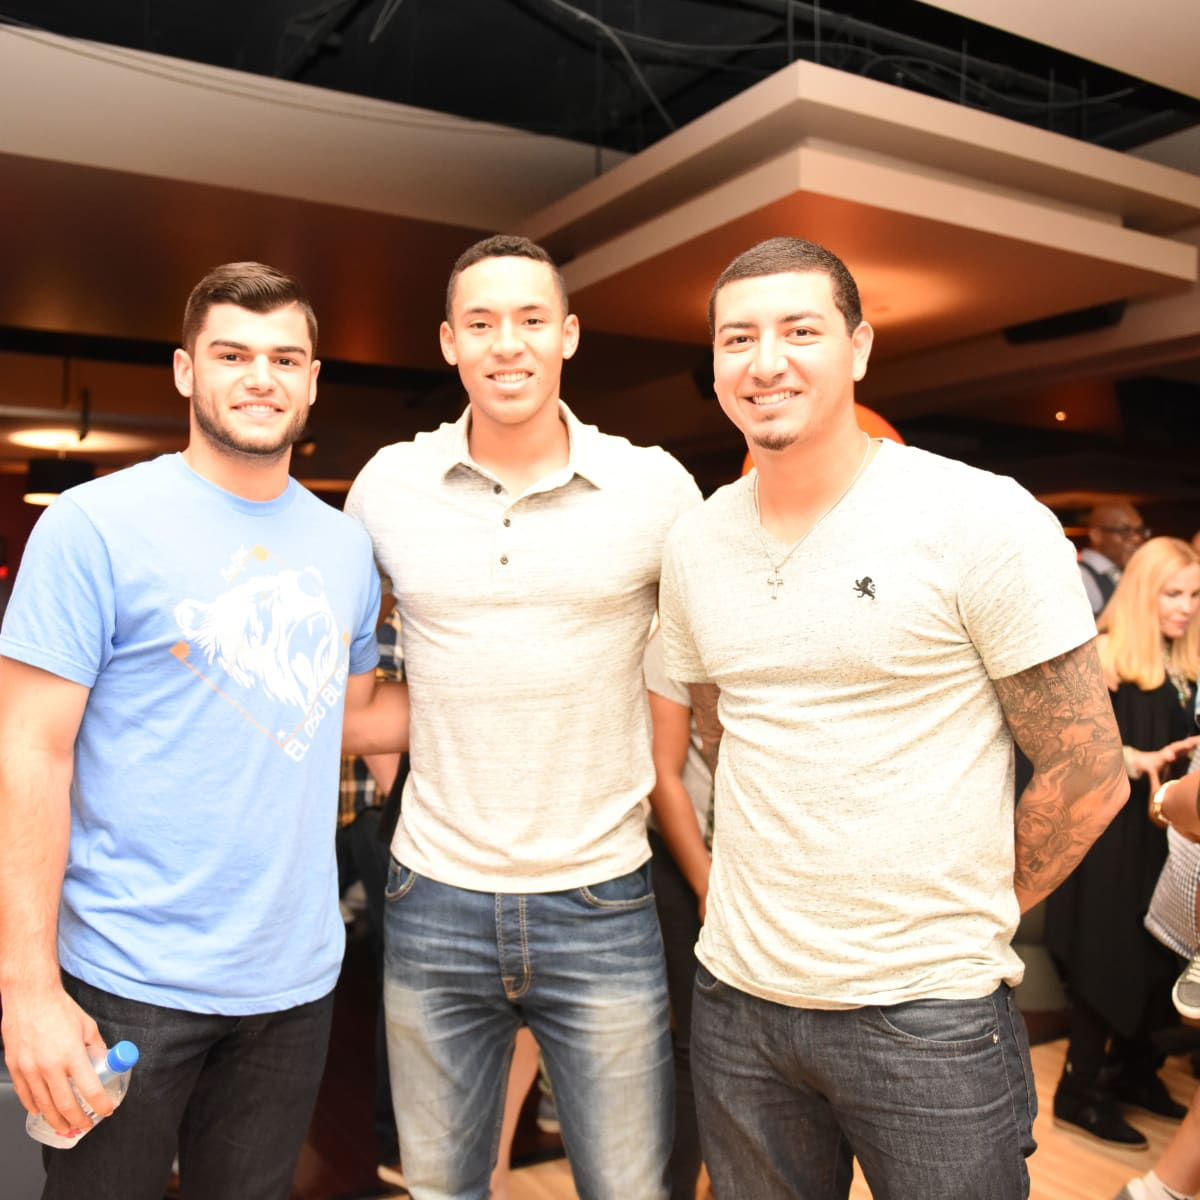 Houston, George Springer All-Star Bowling Benefit, July 2015, Lance McCullers, Carlos Correa, Vincent Velasquez